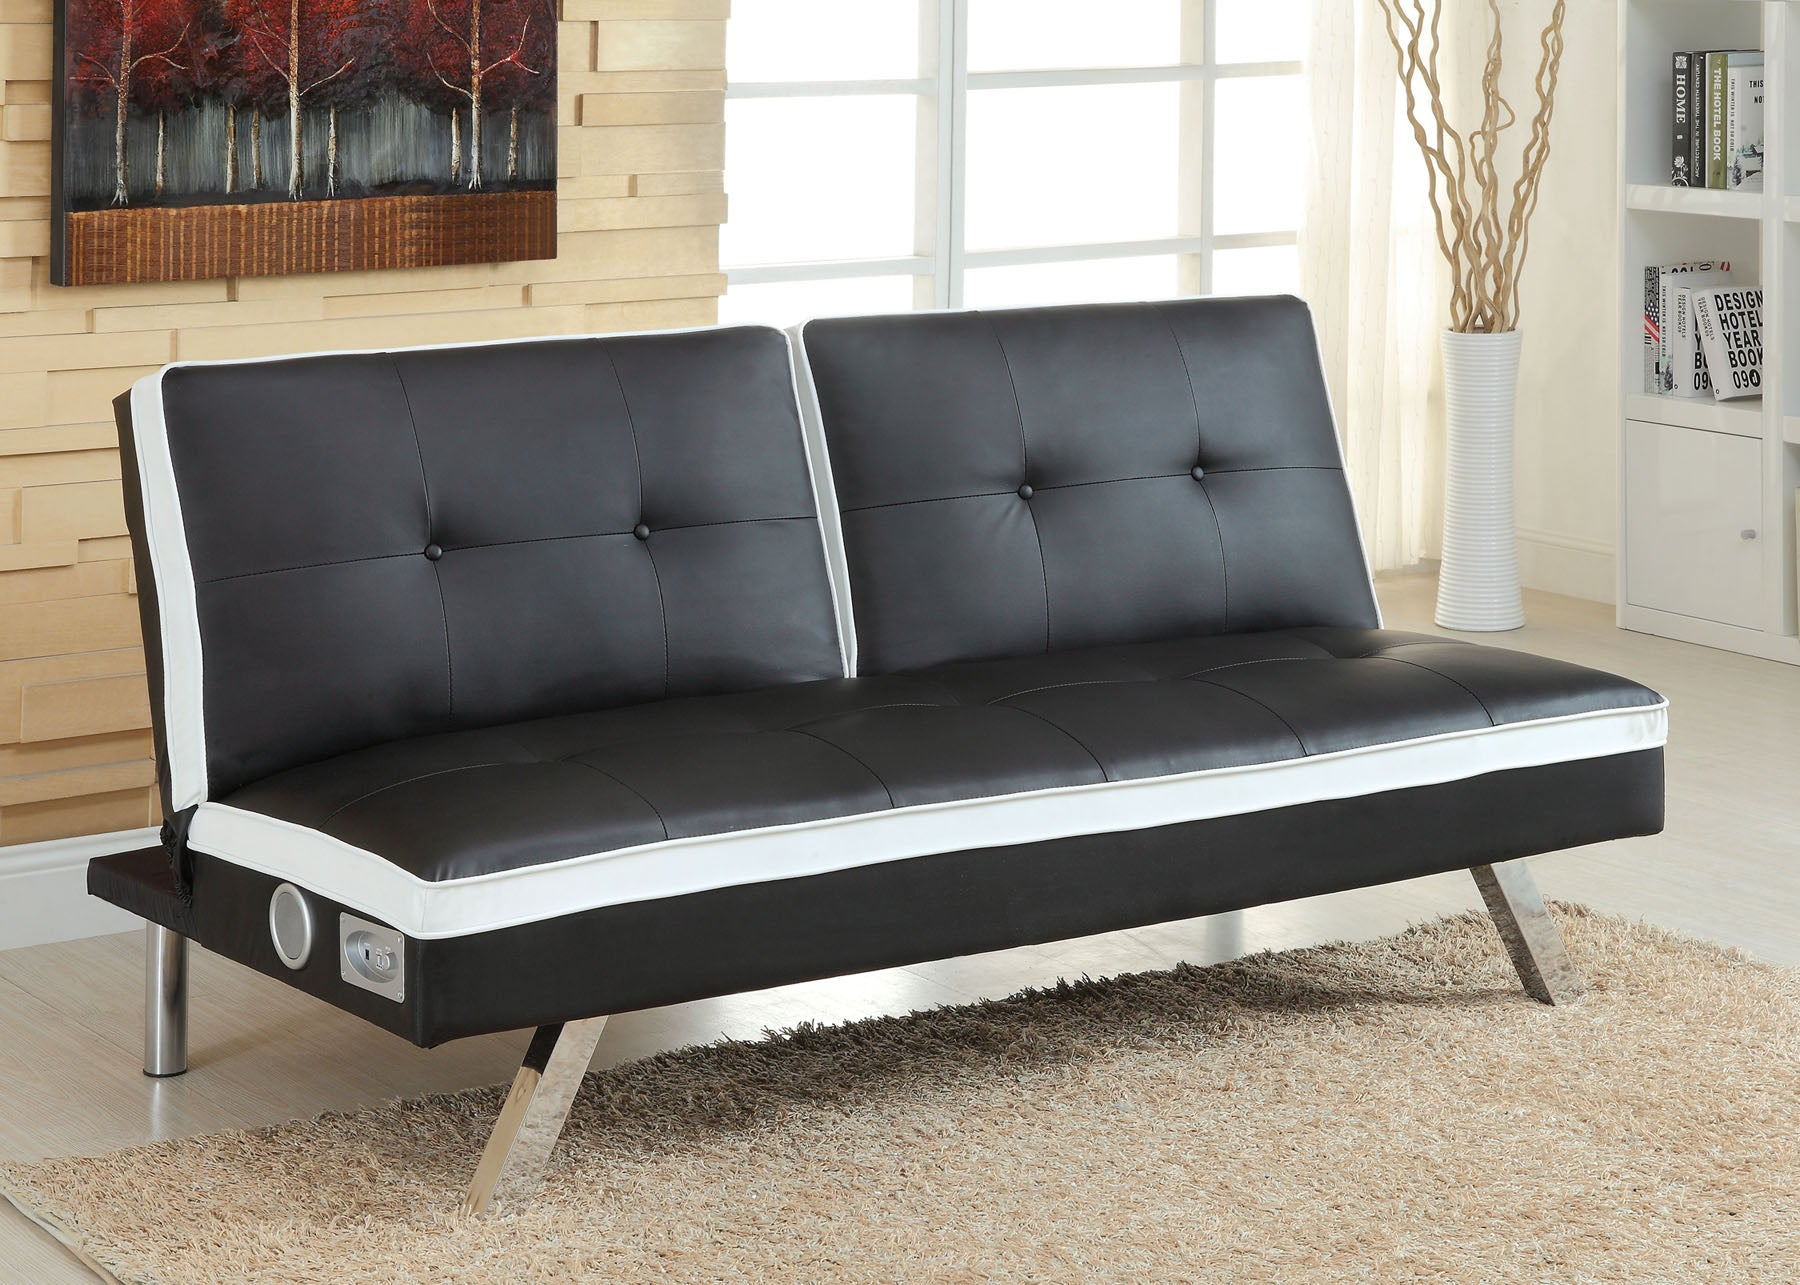 bunk black loft with mattress city chair product value futon full item samba bed bedroom beds